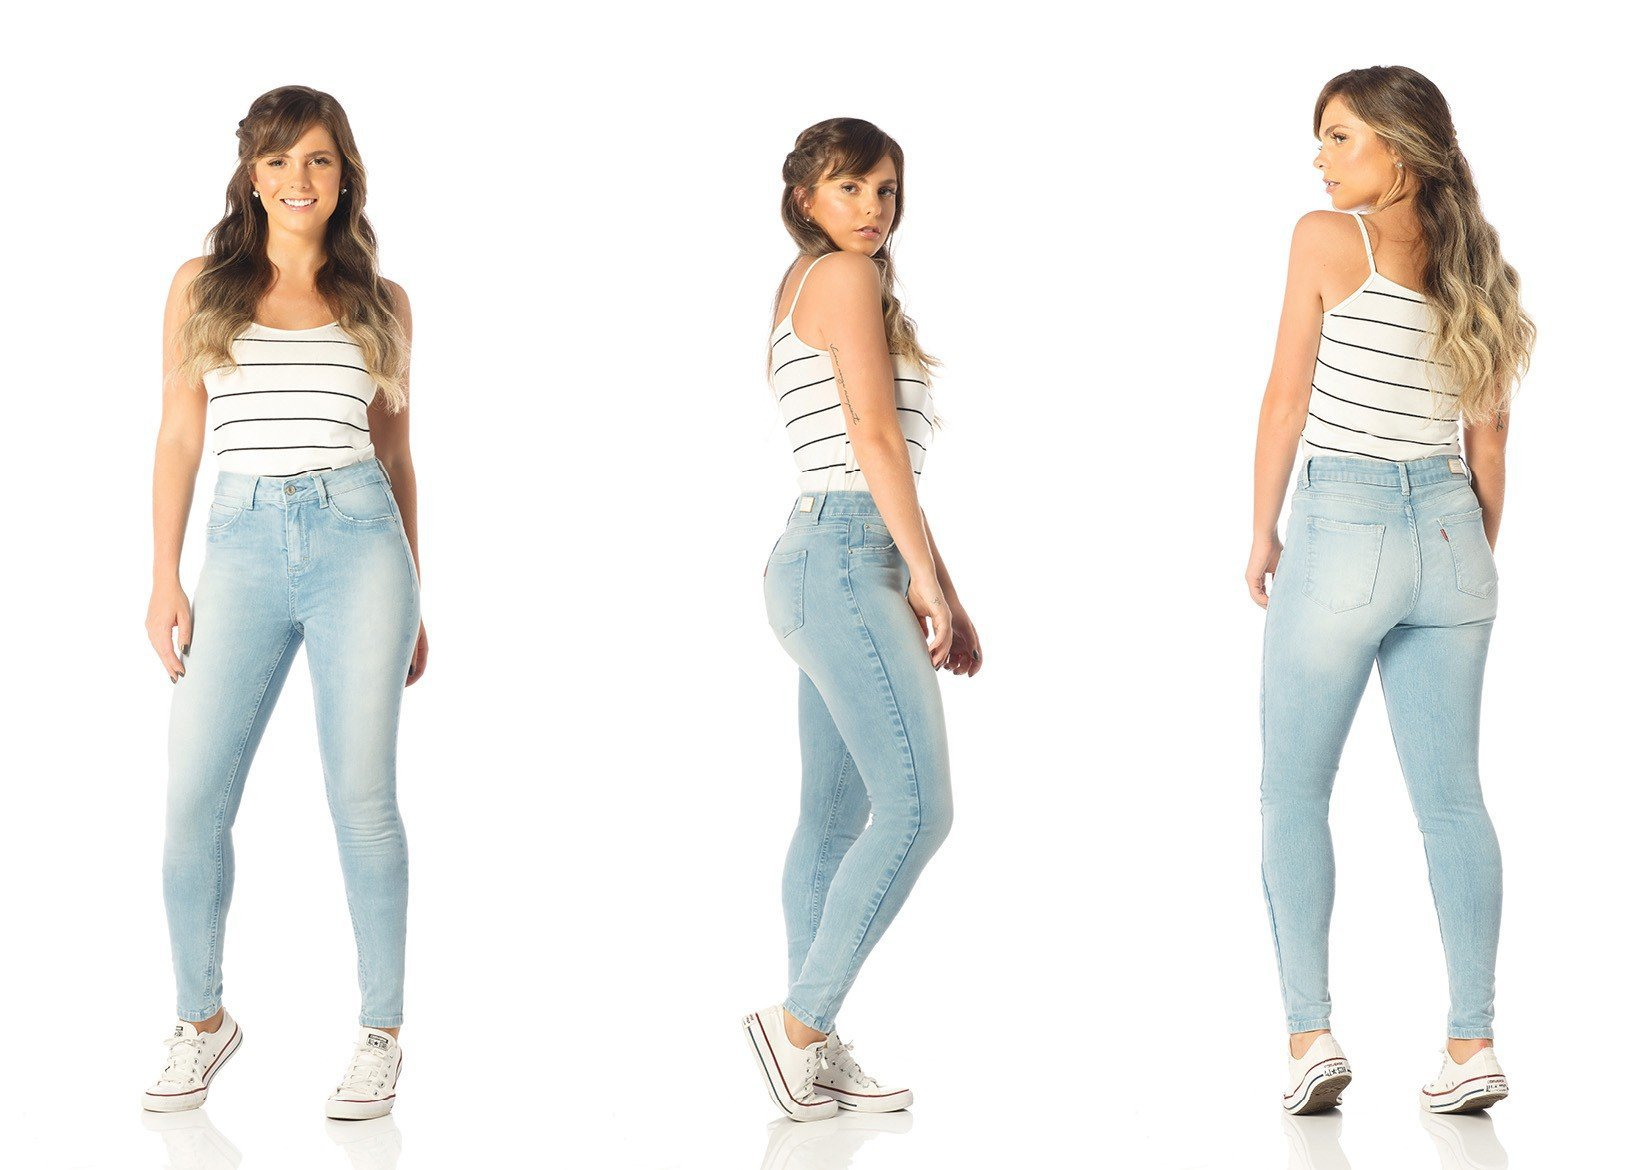 calca skinny media used dz2545 descricao denim zero